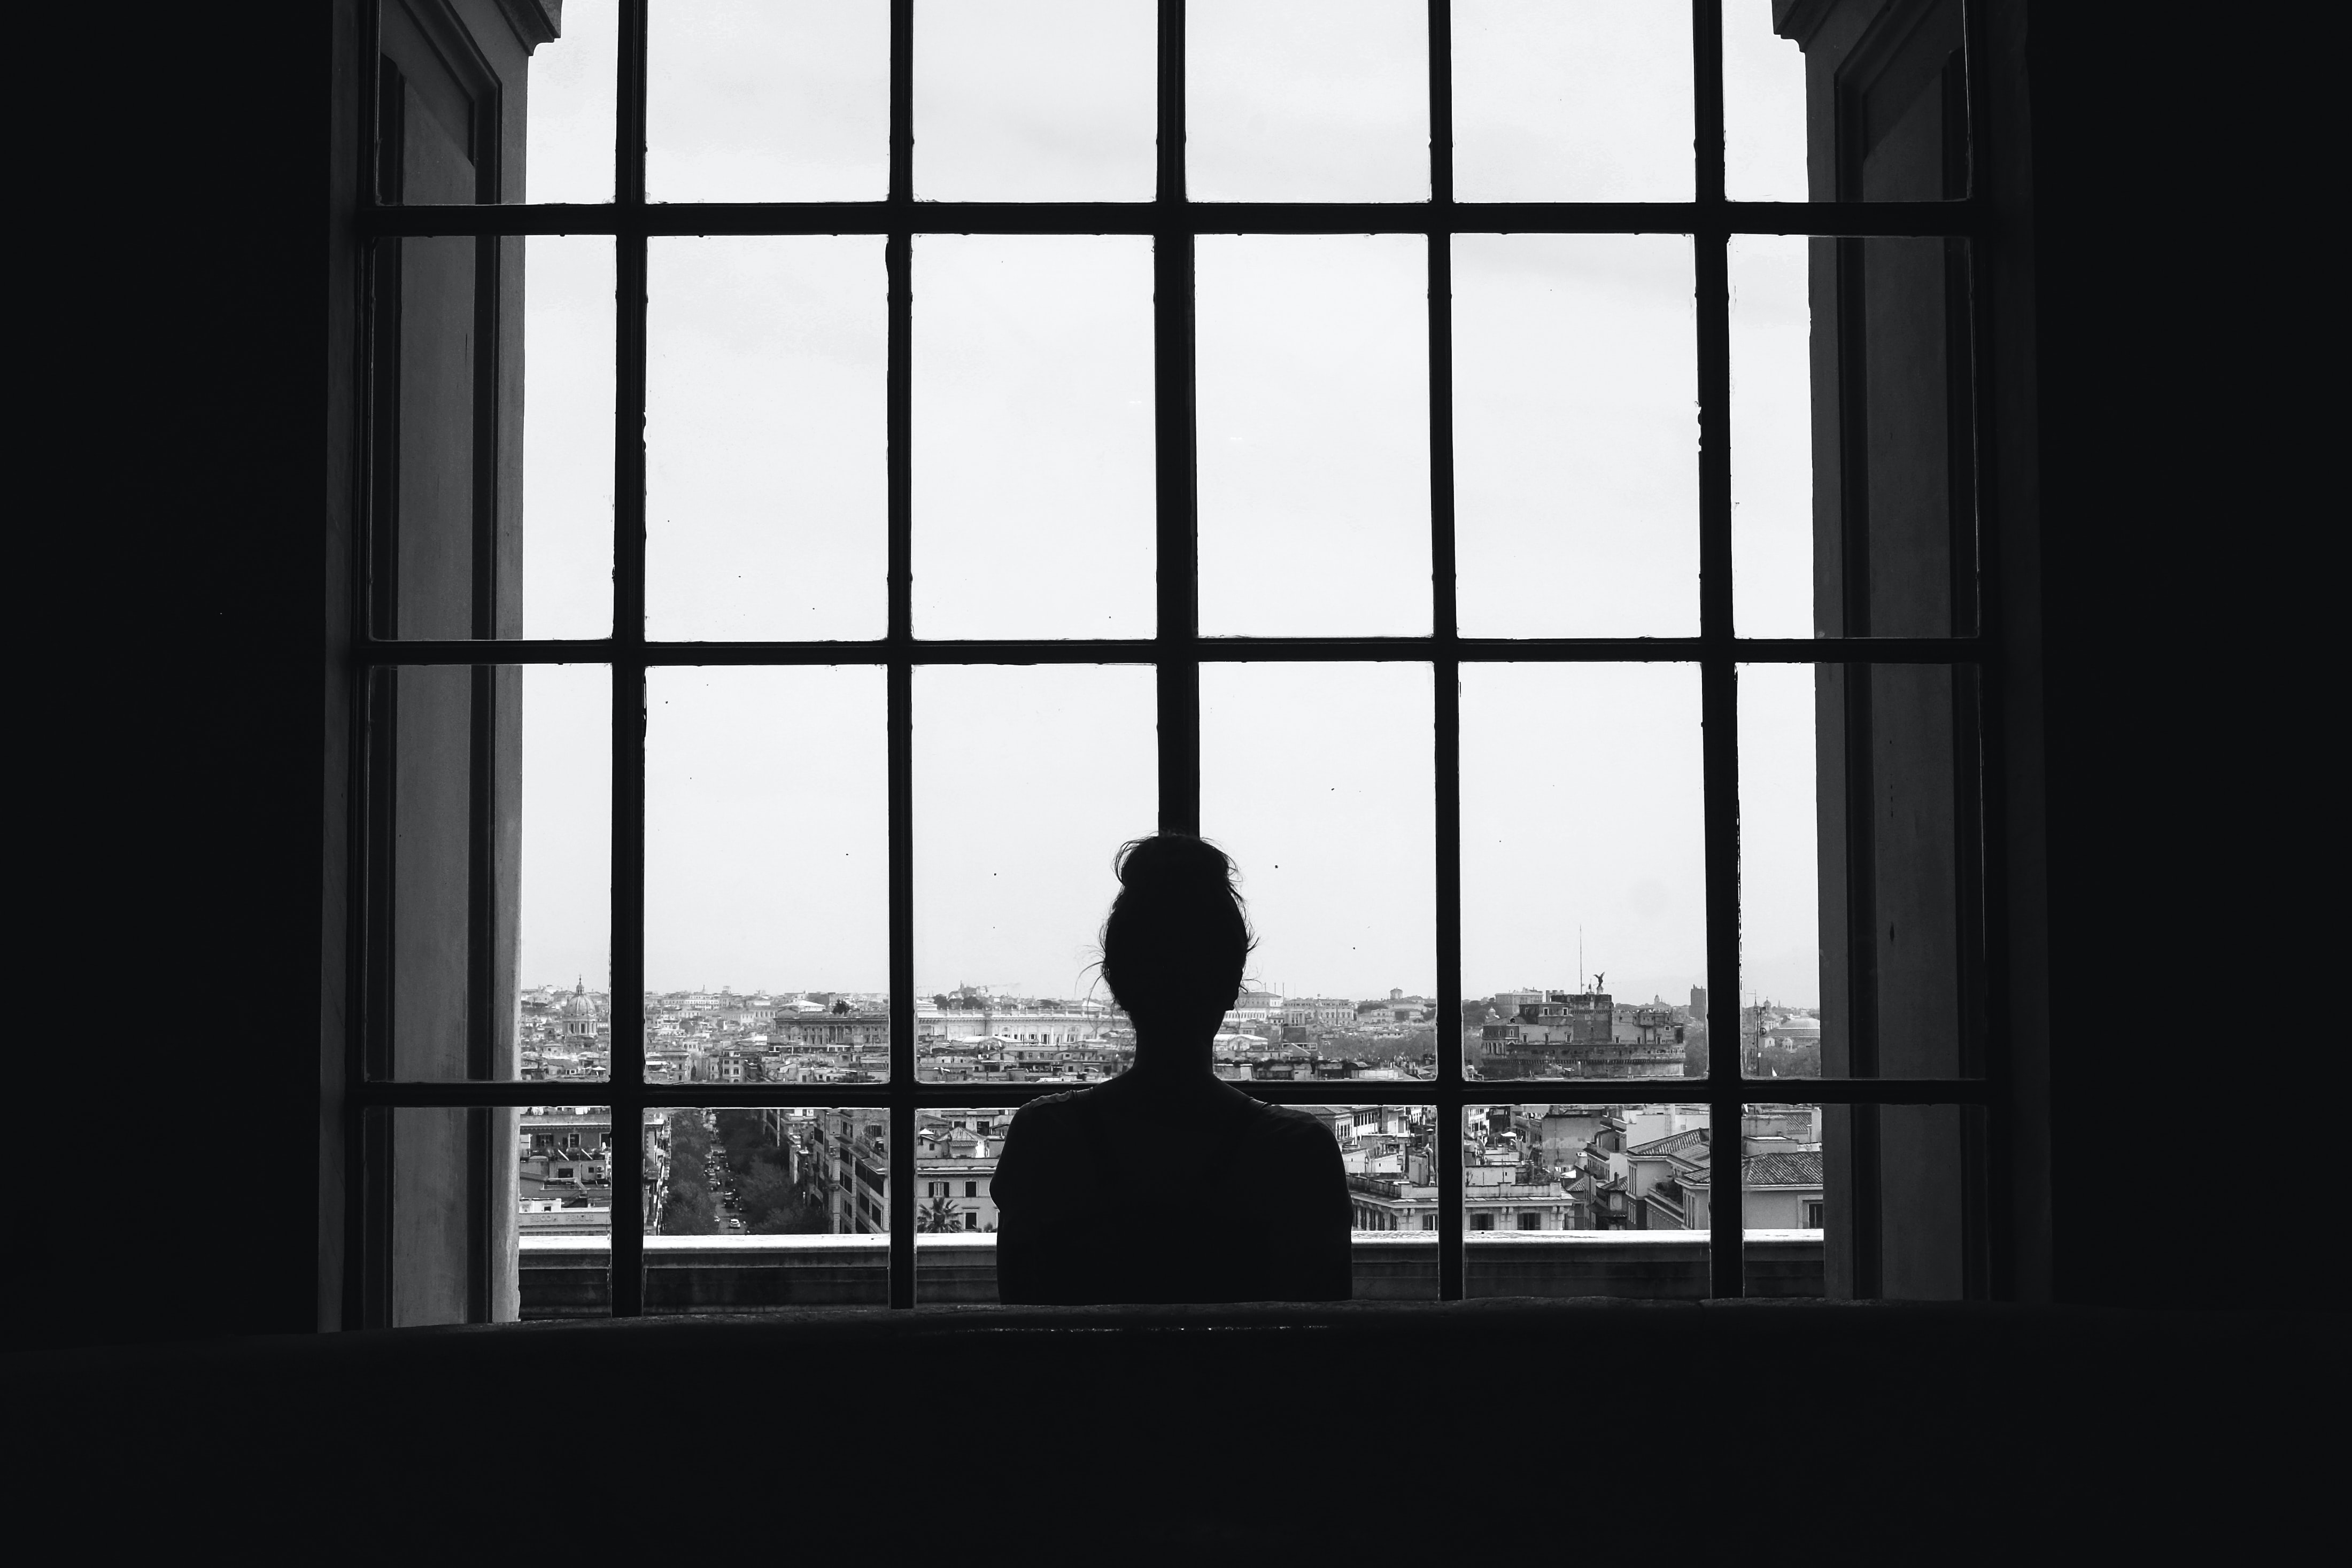 woman standing in front glass window